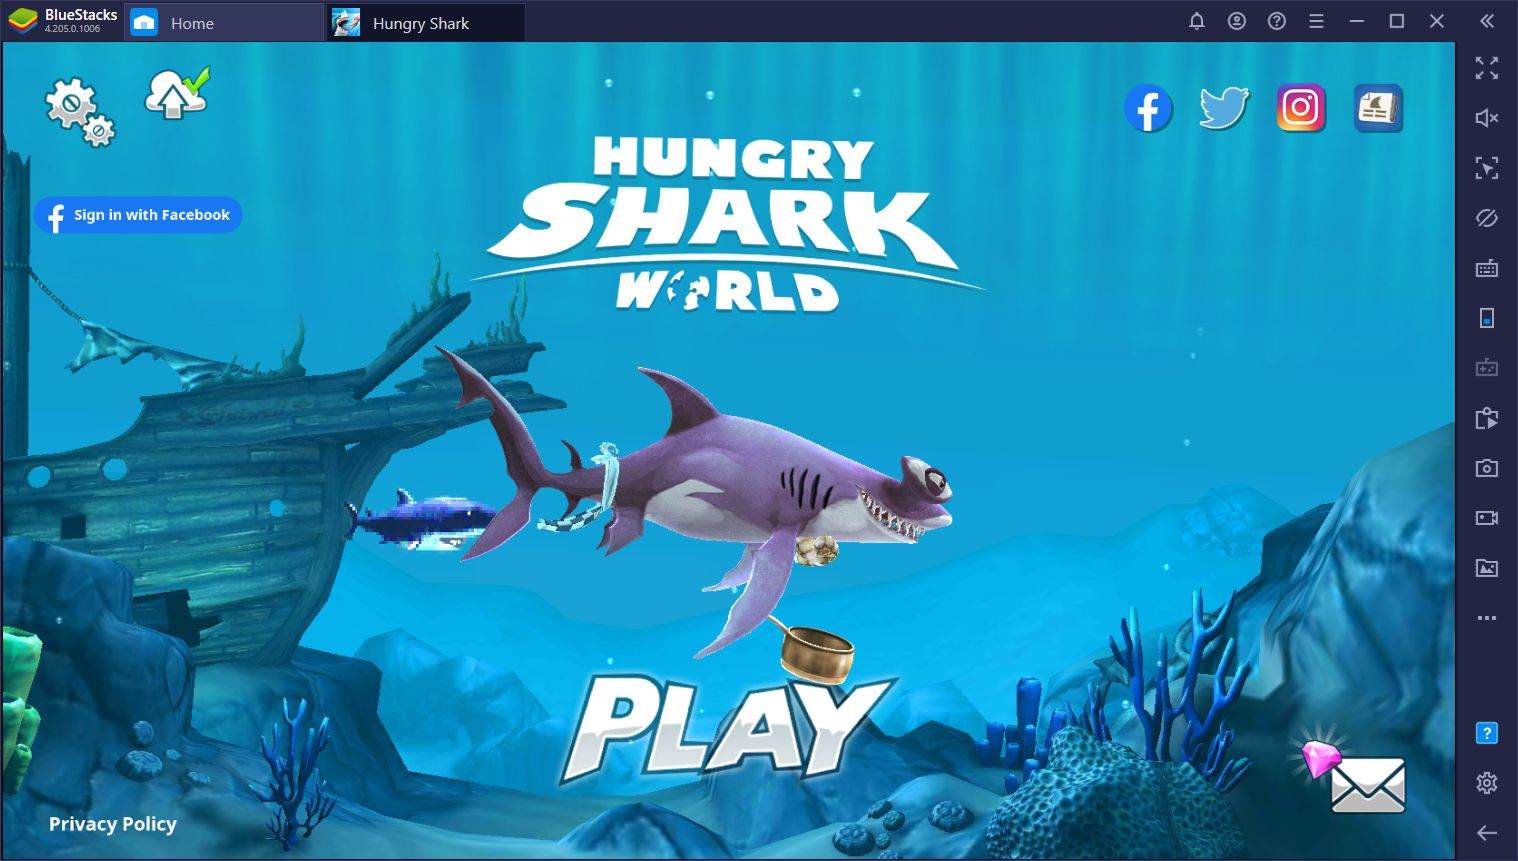 Hungry Shark World - The Best Tips and Tricks to Maximize Your Score